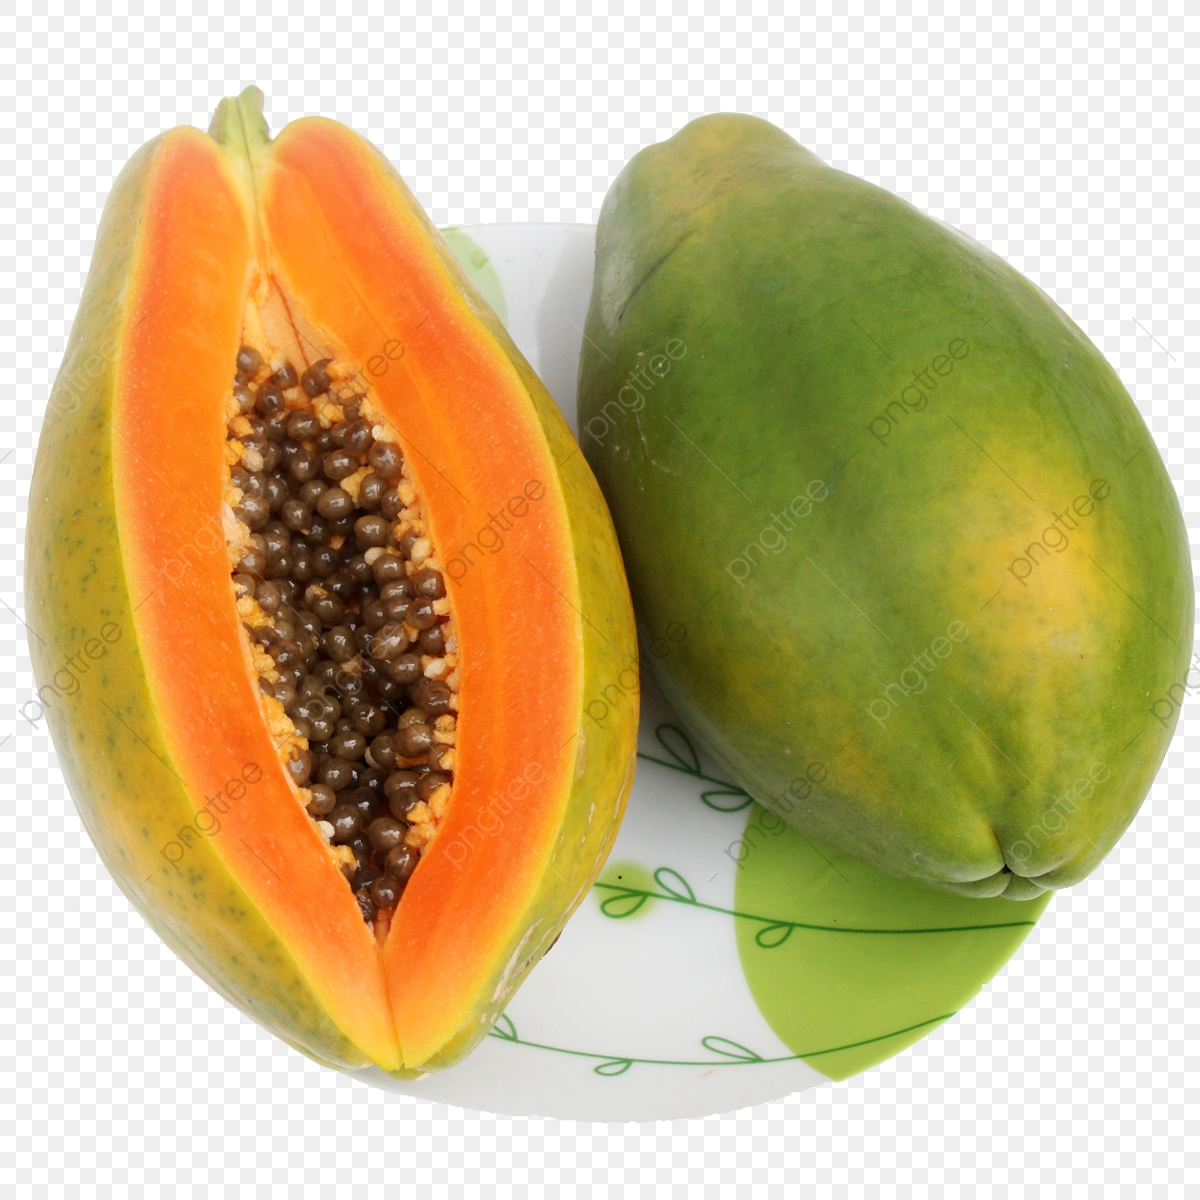 Papaya Fruit Fruits And Vegetables Cut Fruit Png Image And